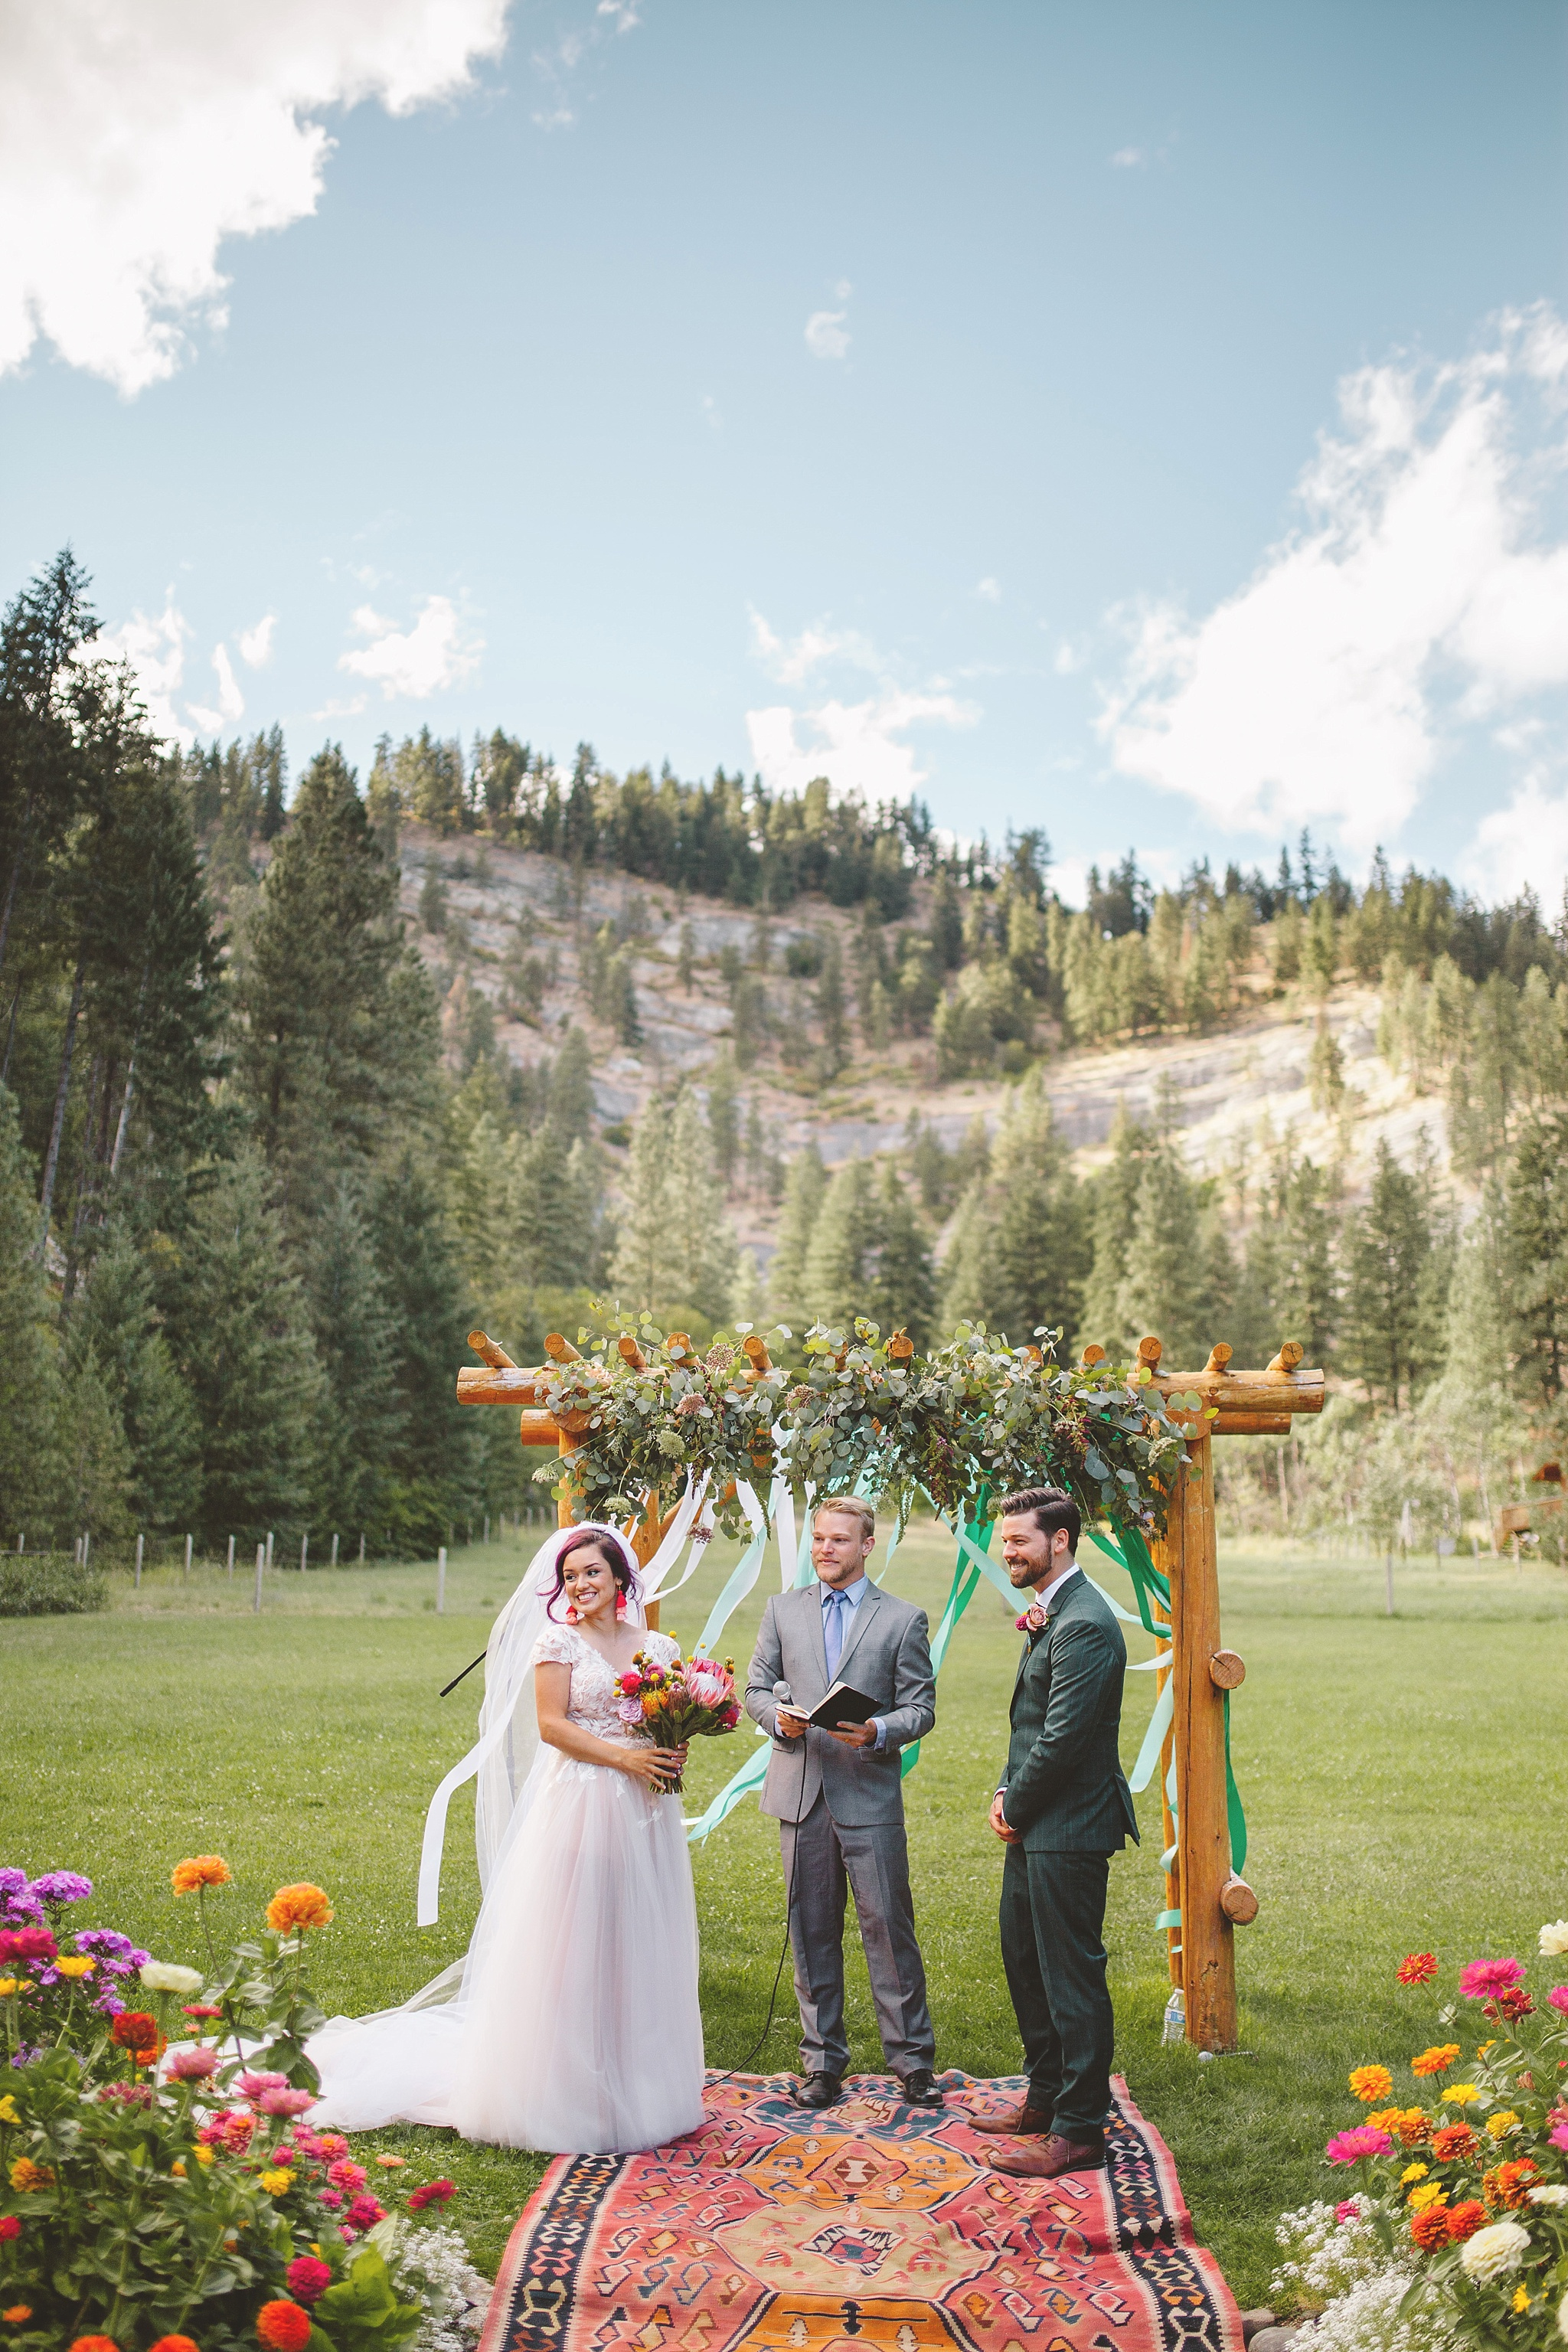 outdoor ceremony in the woods of washington